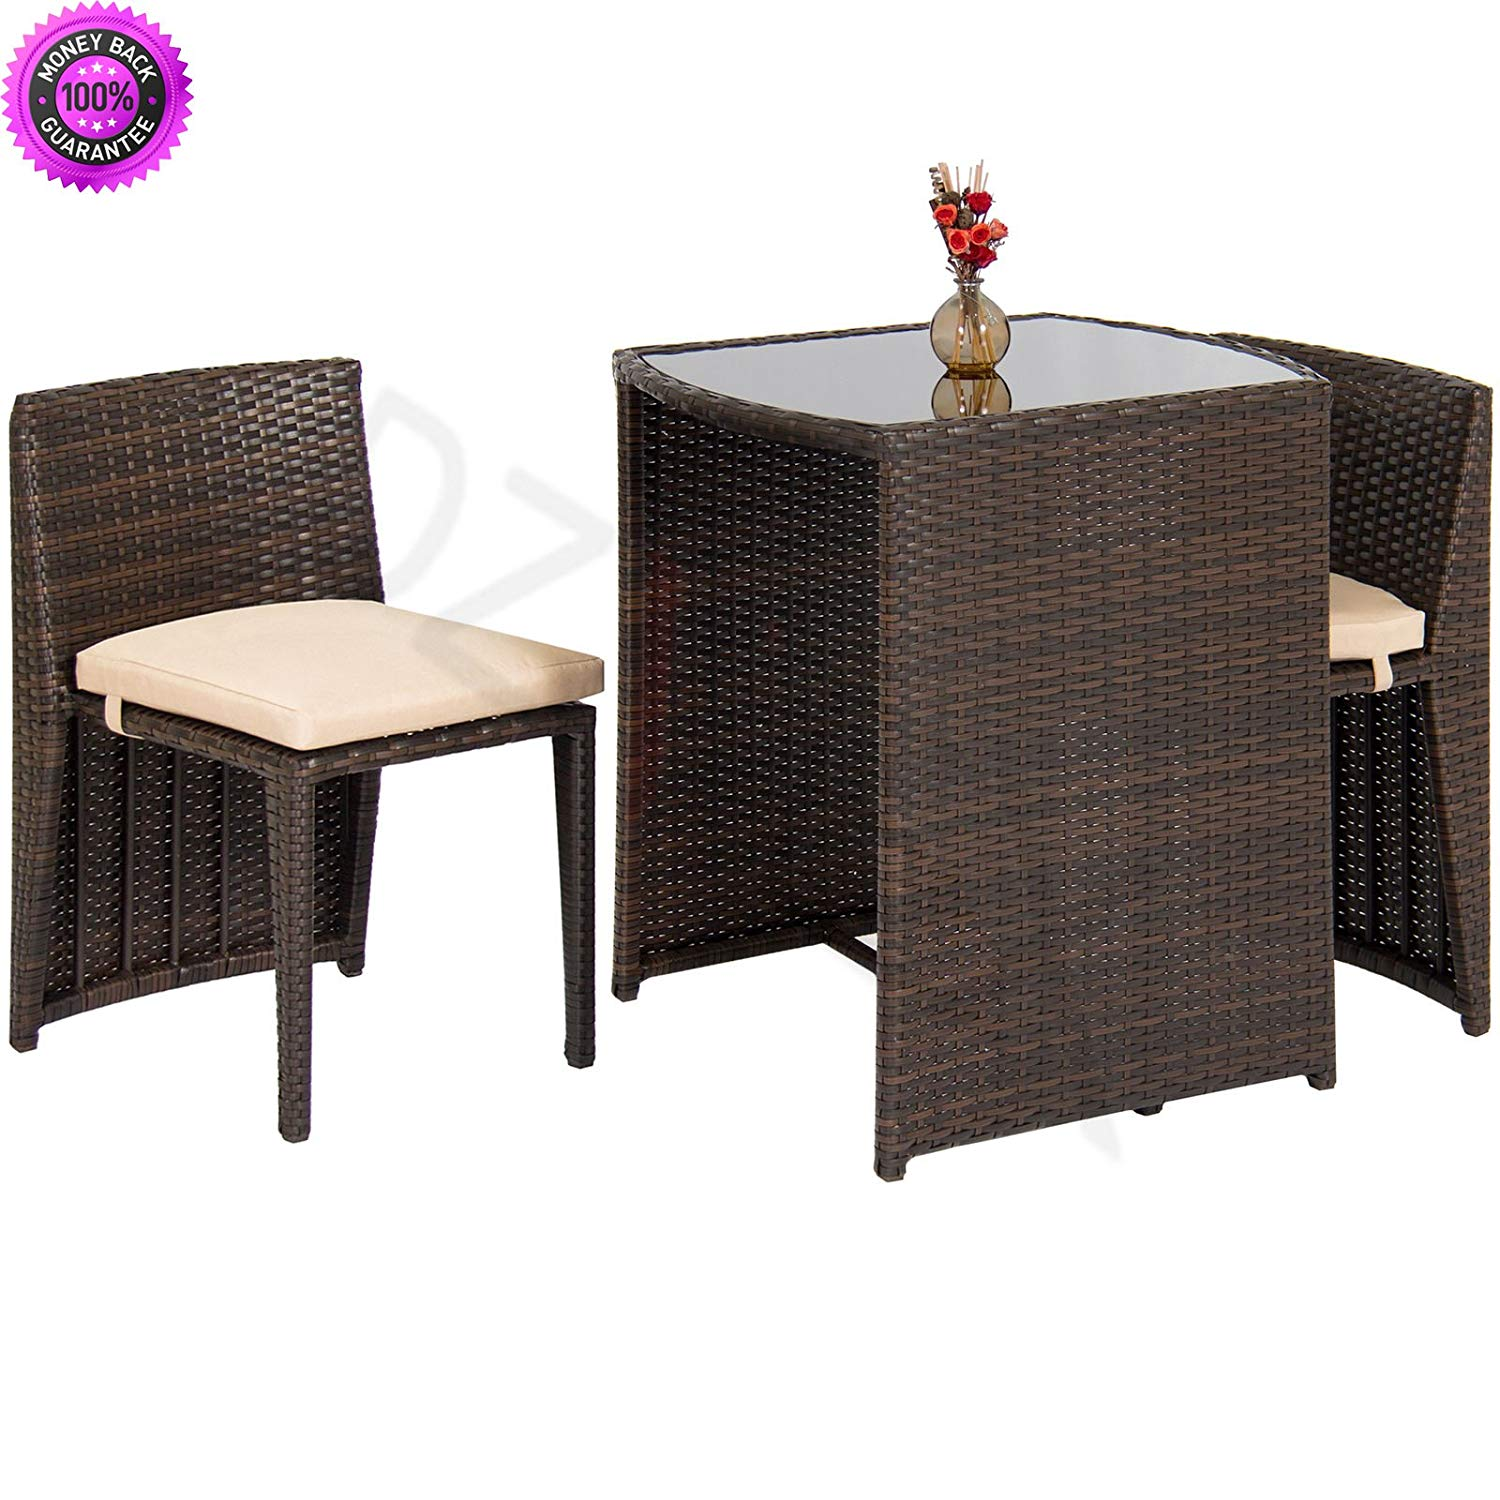 DzVeX Outdoor Patio Furniture Wicker 3pc Bistro Set Glass Top Table, 2 Chairs- Brown And patio furniture target small patio furniture patio furniture outdoor furniture clearance patio dining